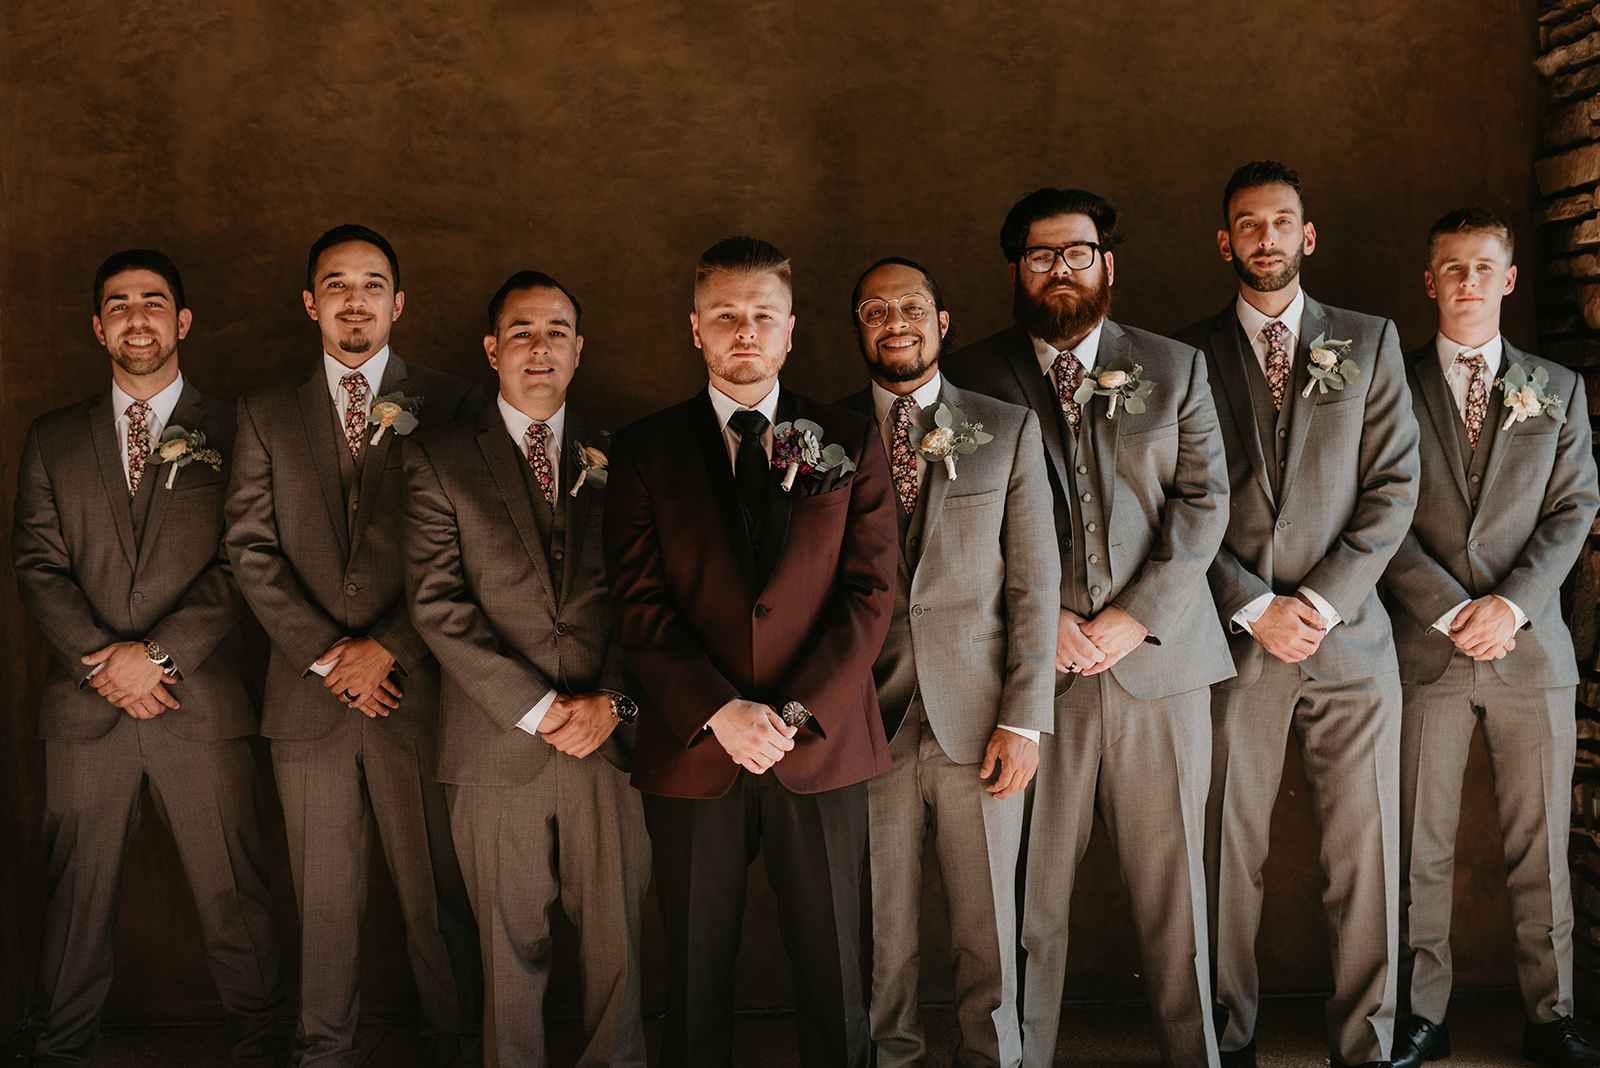 Backyard Las Vegas Wedding - Groomsmen